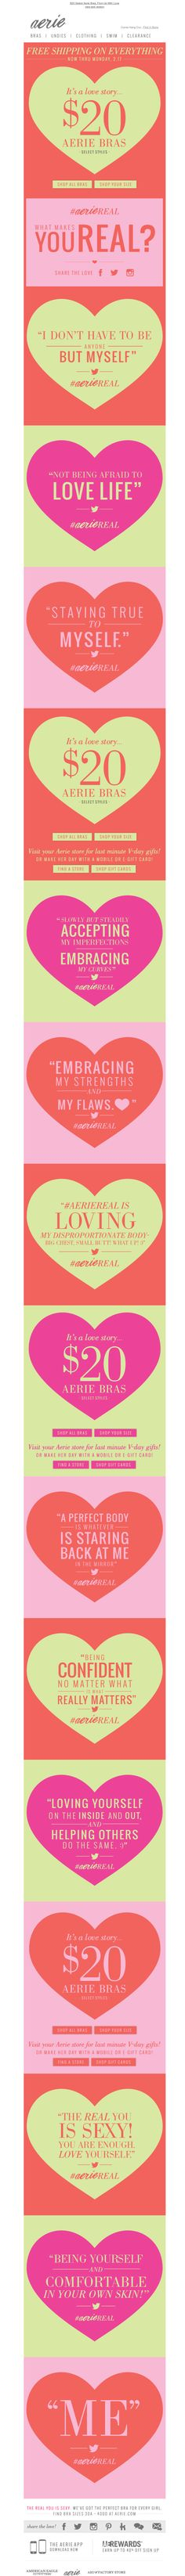 Aerie email Valentine's Day 2014 love email designs email marketing